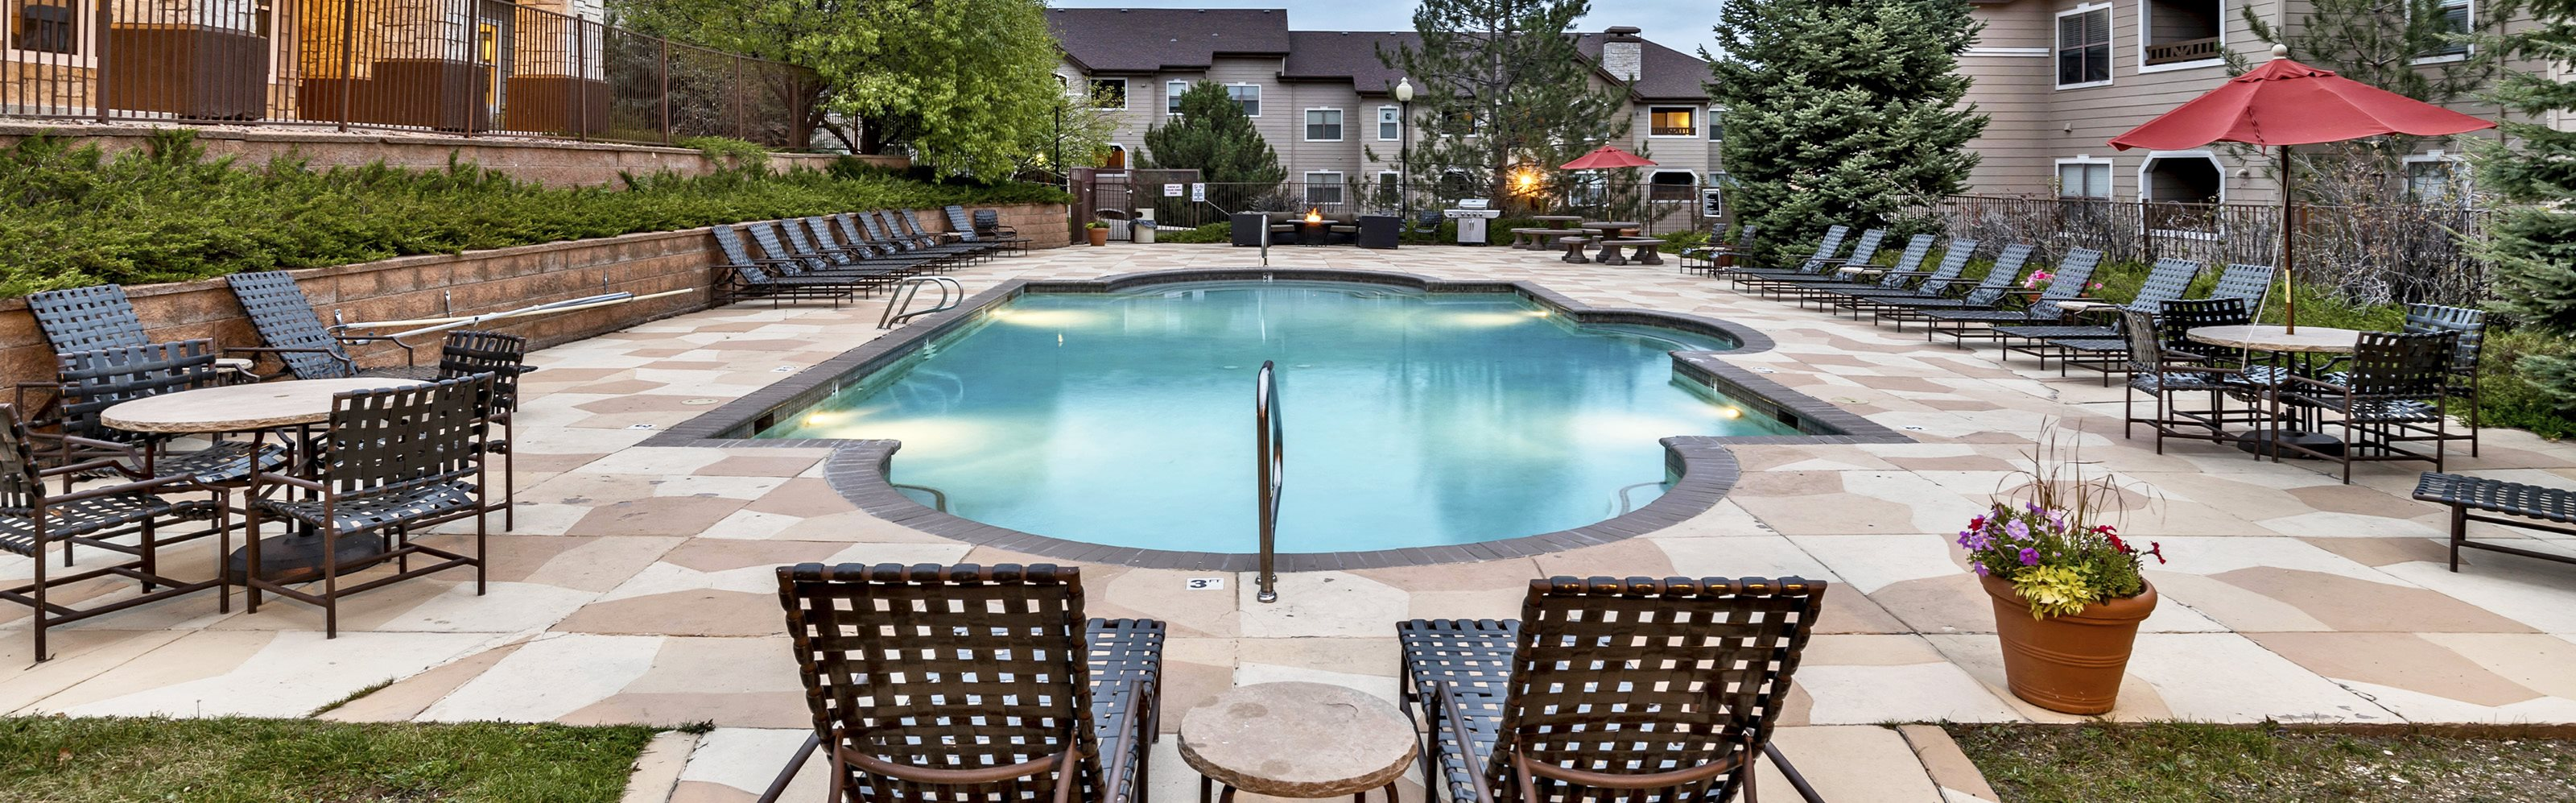 Grand Centennial Apartments pool area